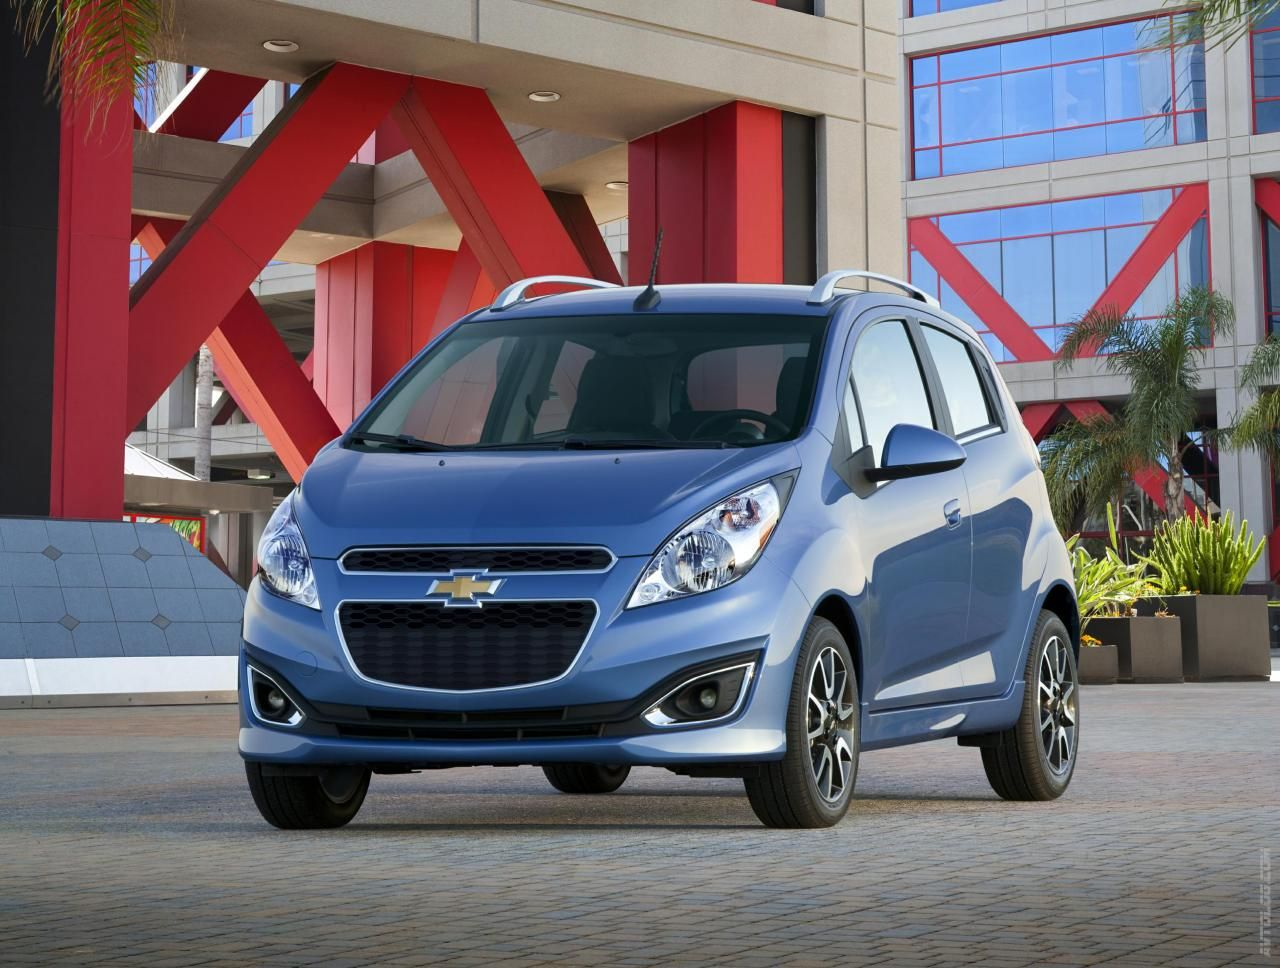 2013 chevrolet spark http www chevyoftulsa com inventory_search